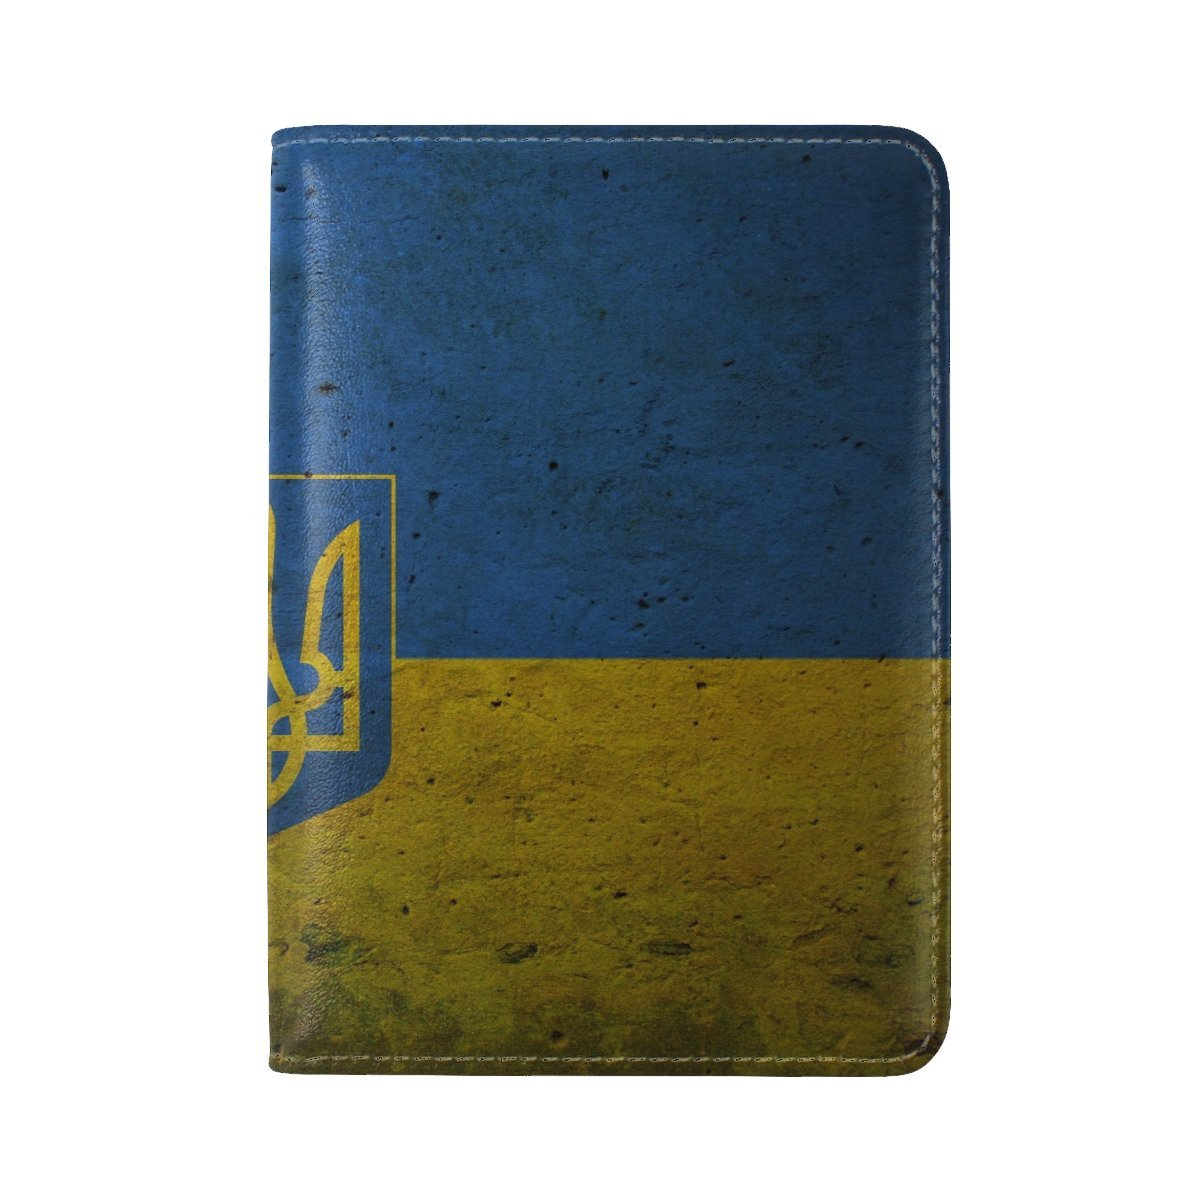 Flag Coat Of Arms Ukraine Paint Leather Passport Holder Cover Case Travel One Pocket